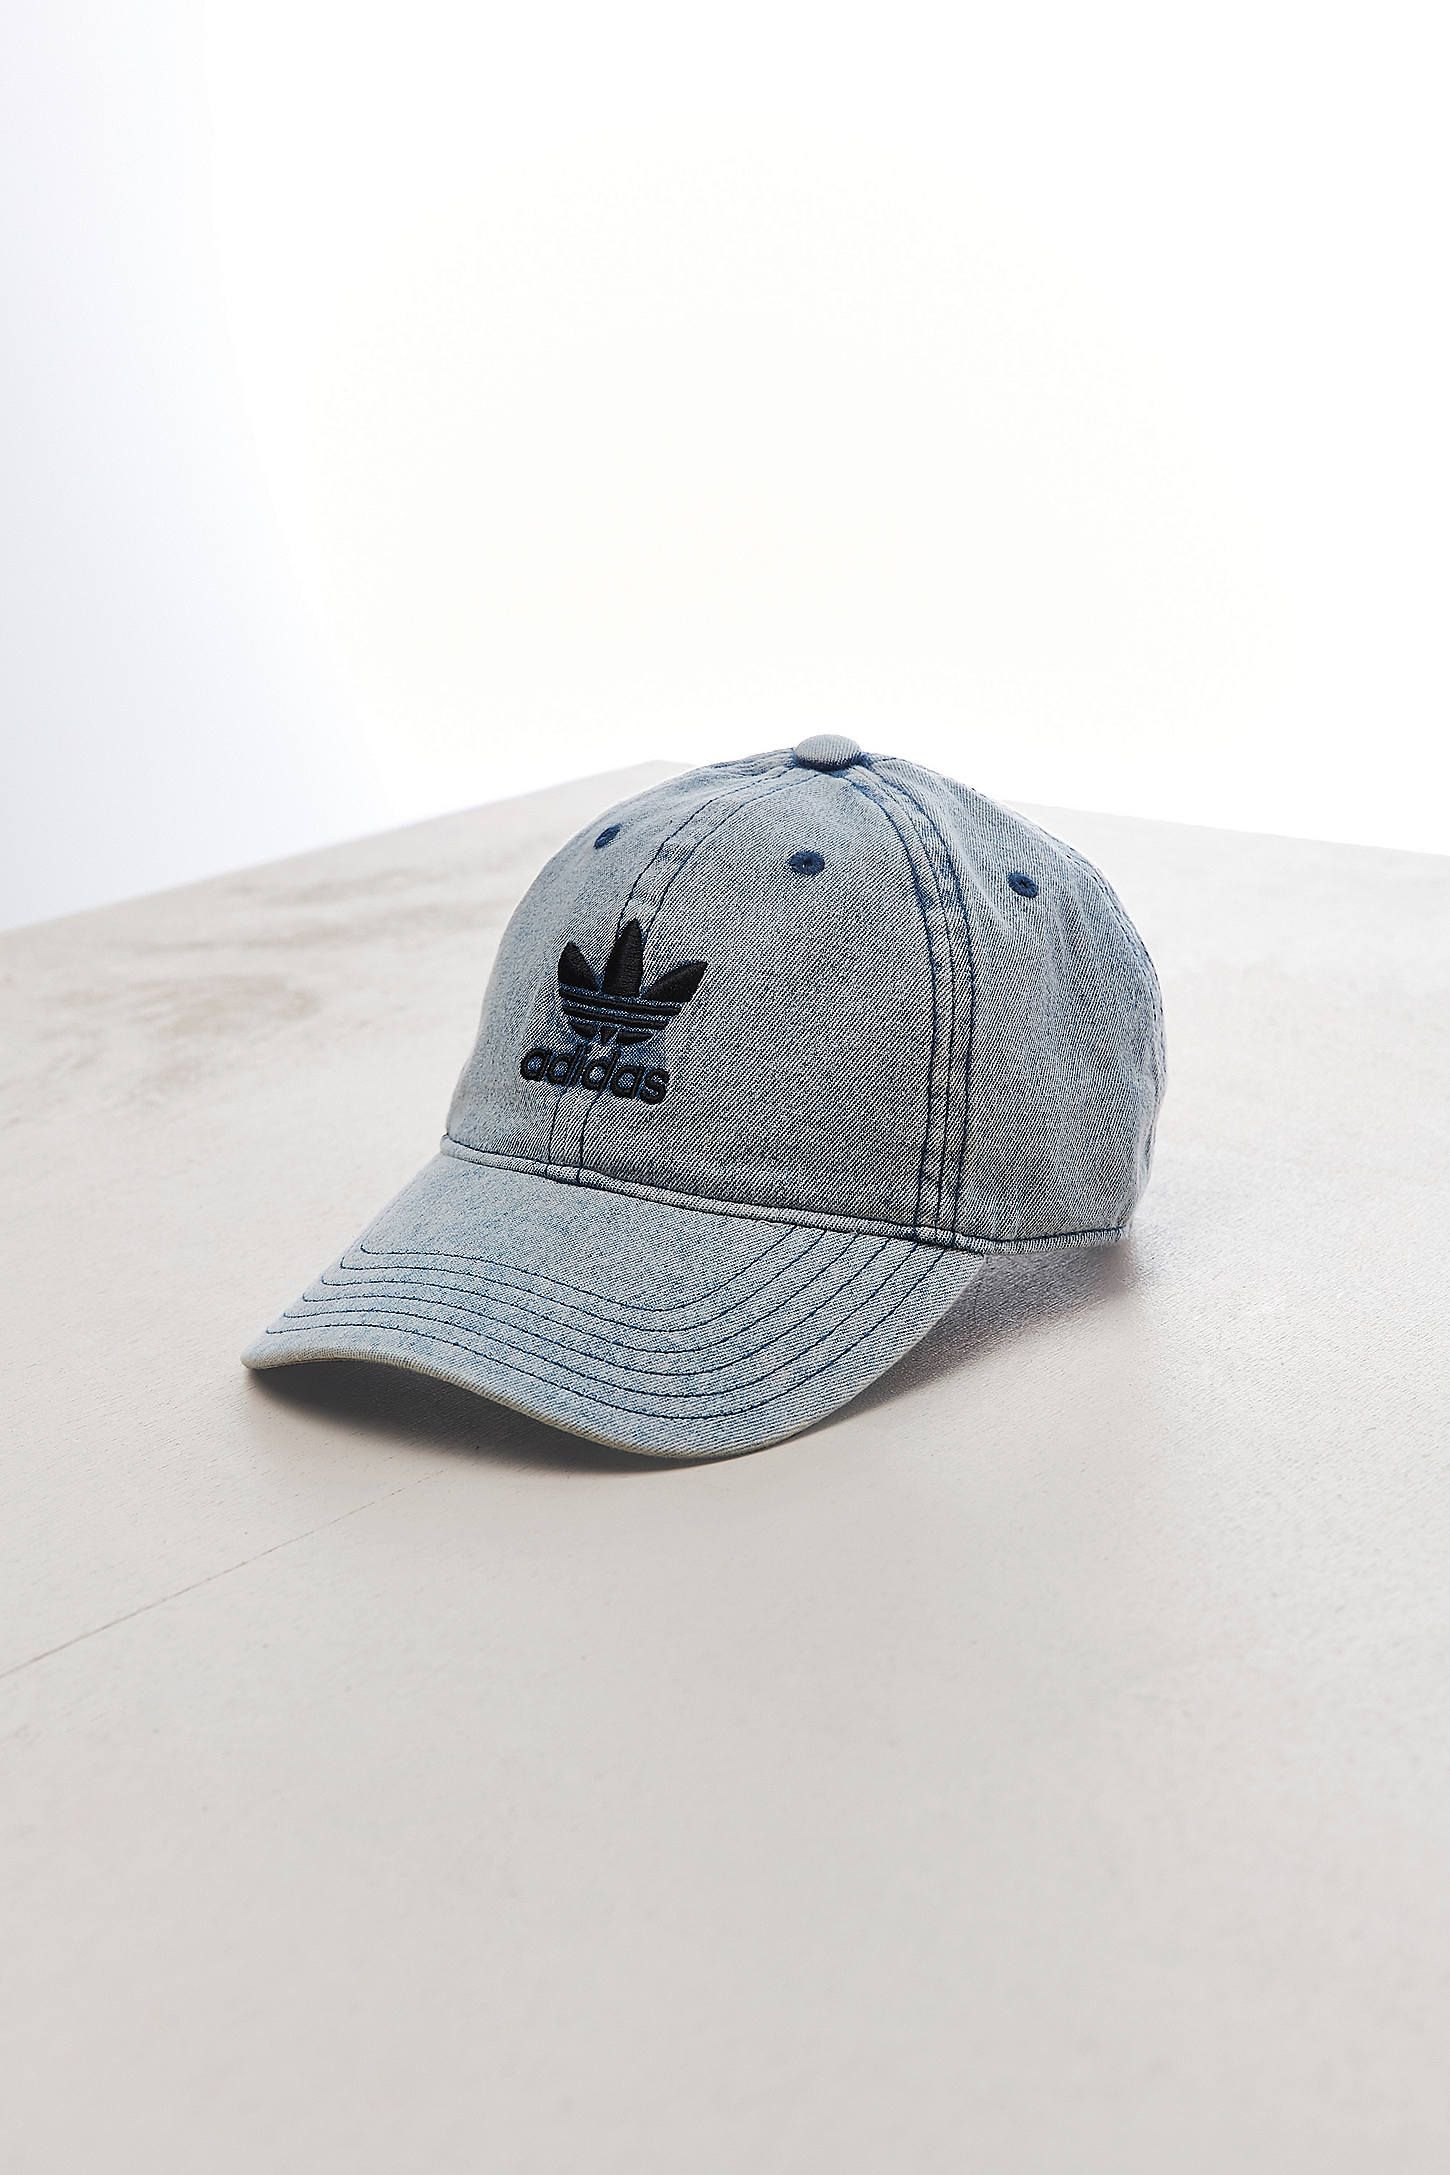 7b15d061617e3 Slide View  1  adidas Relaxed Denim Baseball Hat